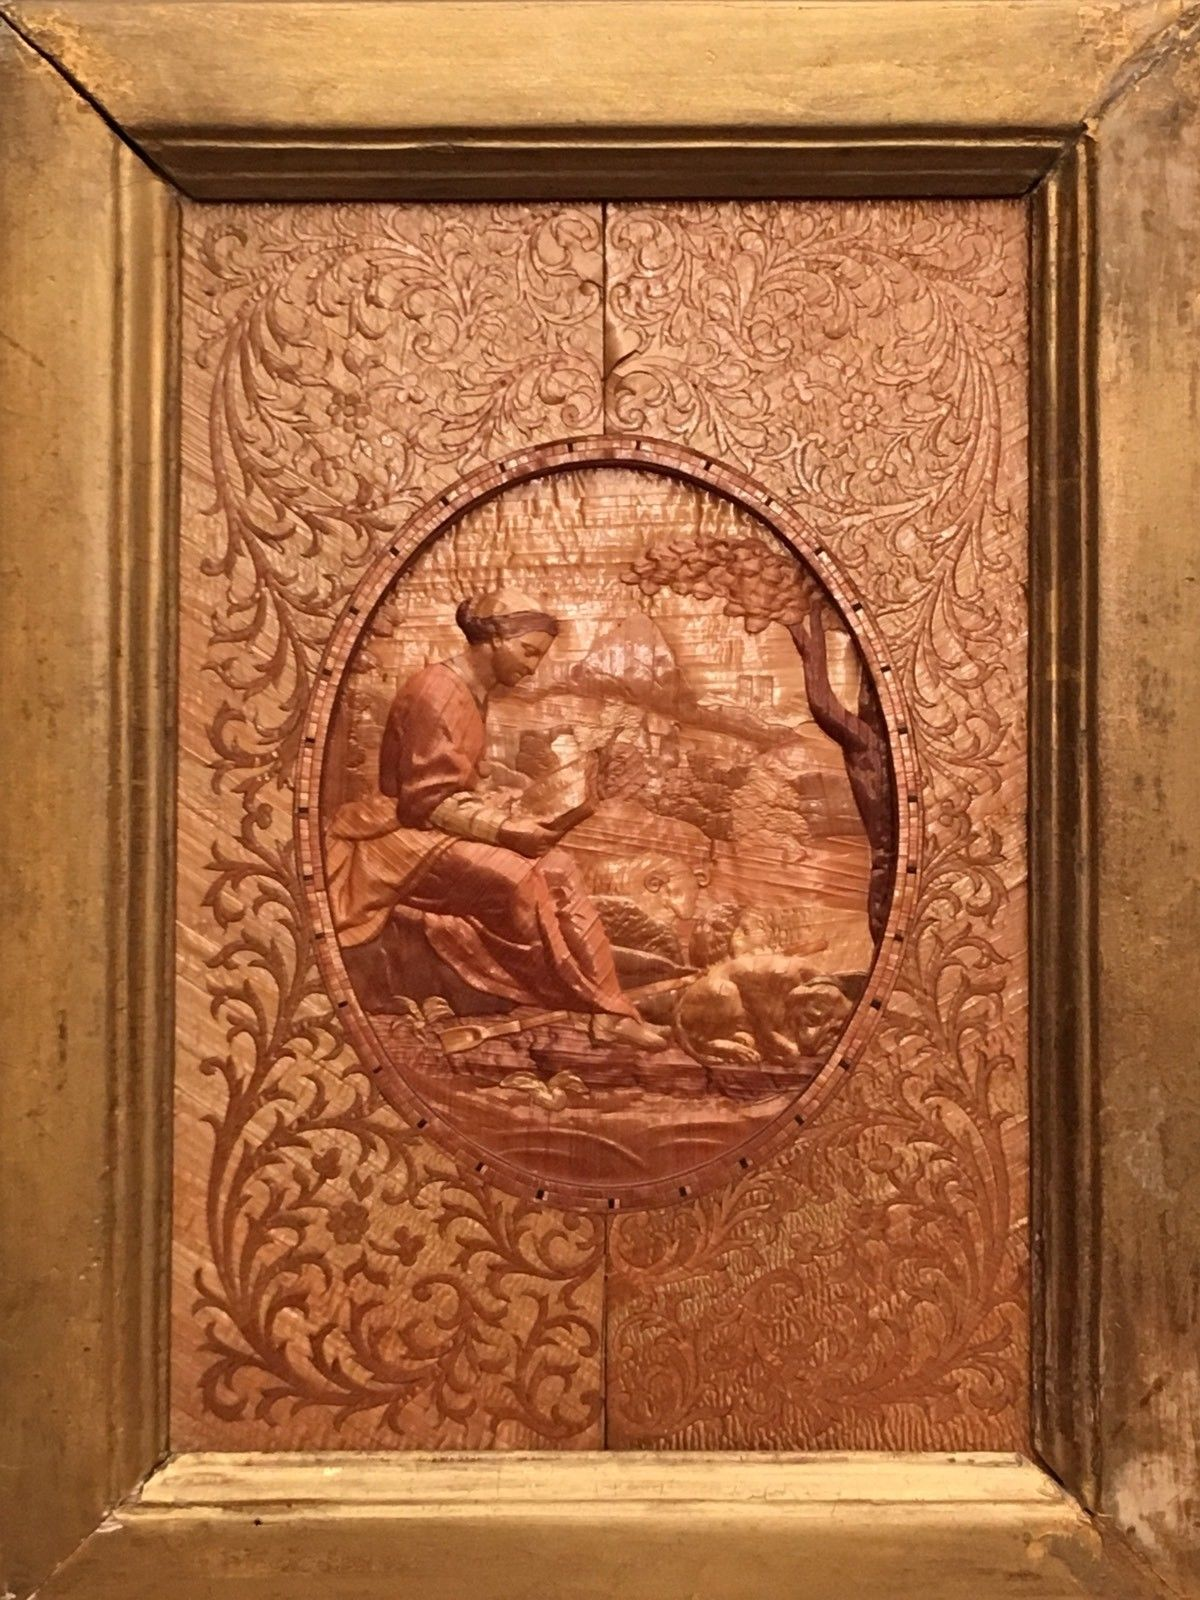 Embossed straw- panel of shepardess from the Collection of Lison De Caunes.